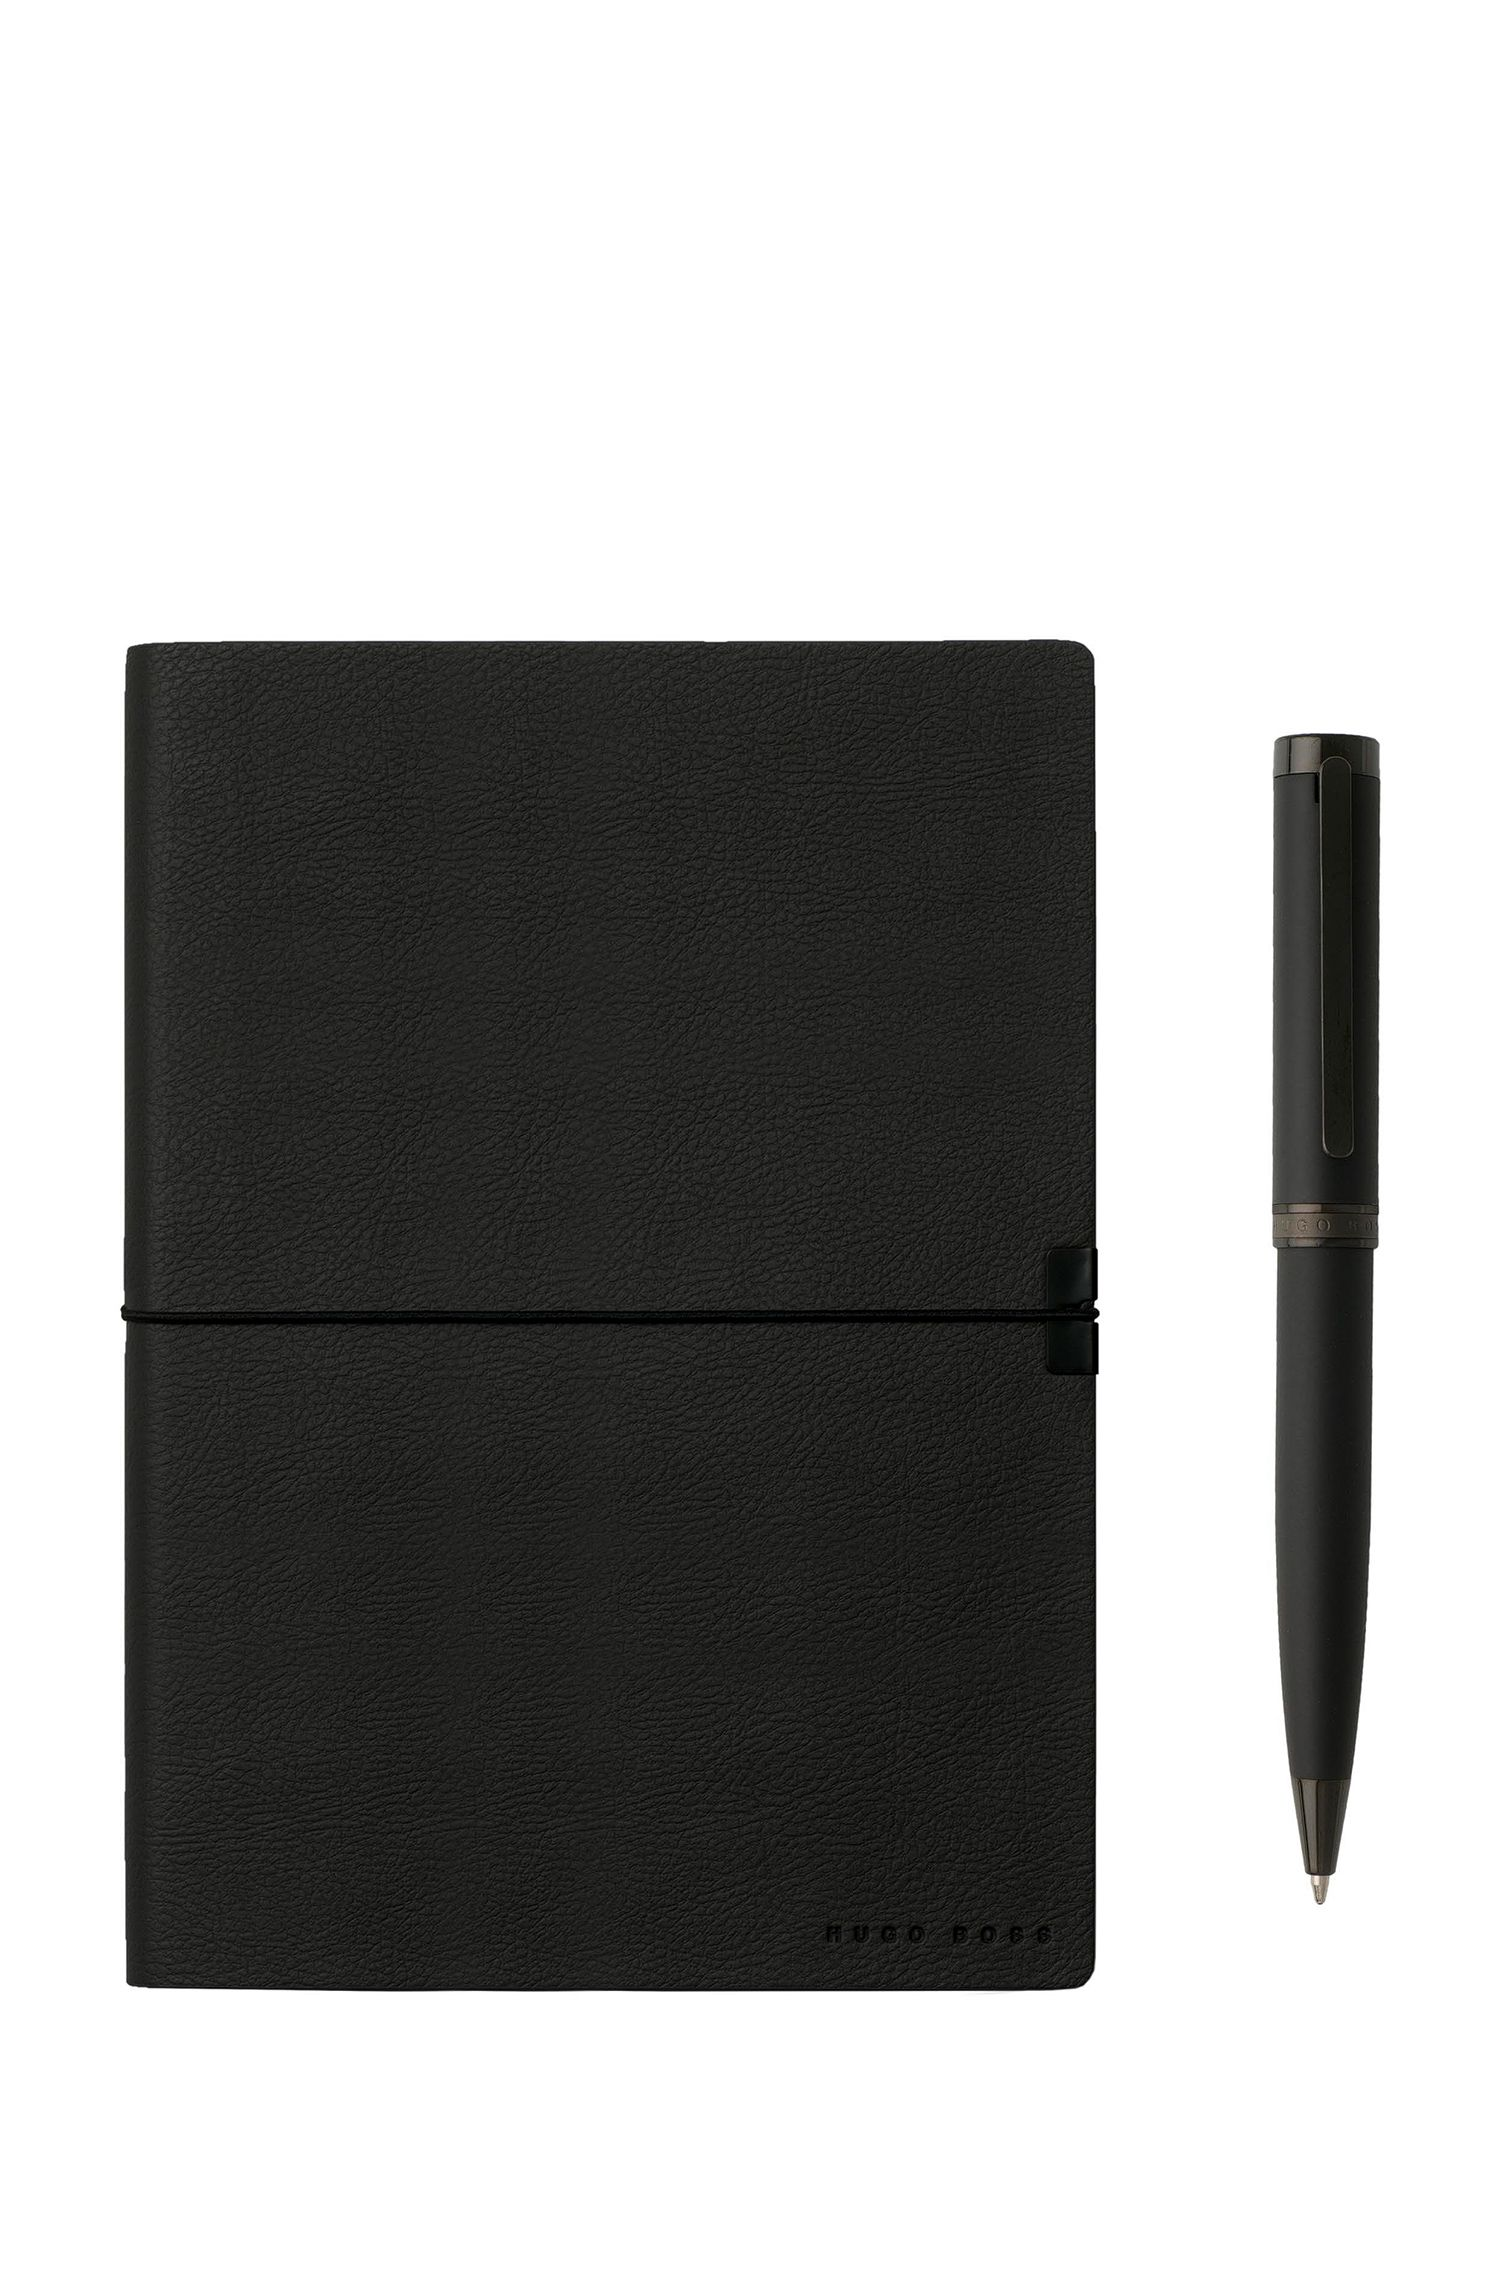 Gift set with black A5 notepad and ballpoint pen